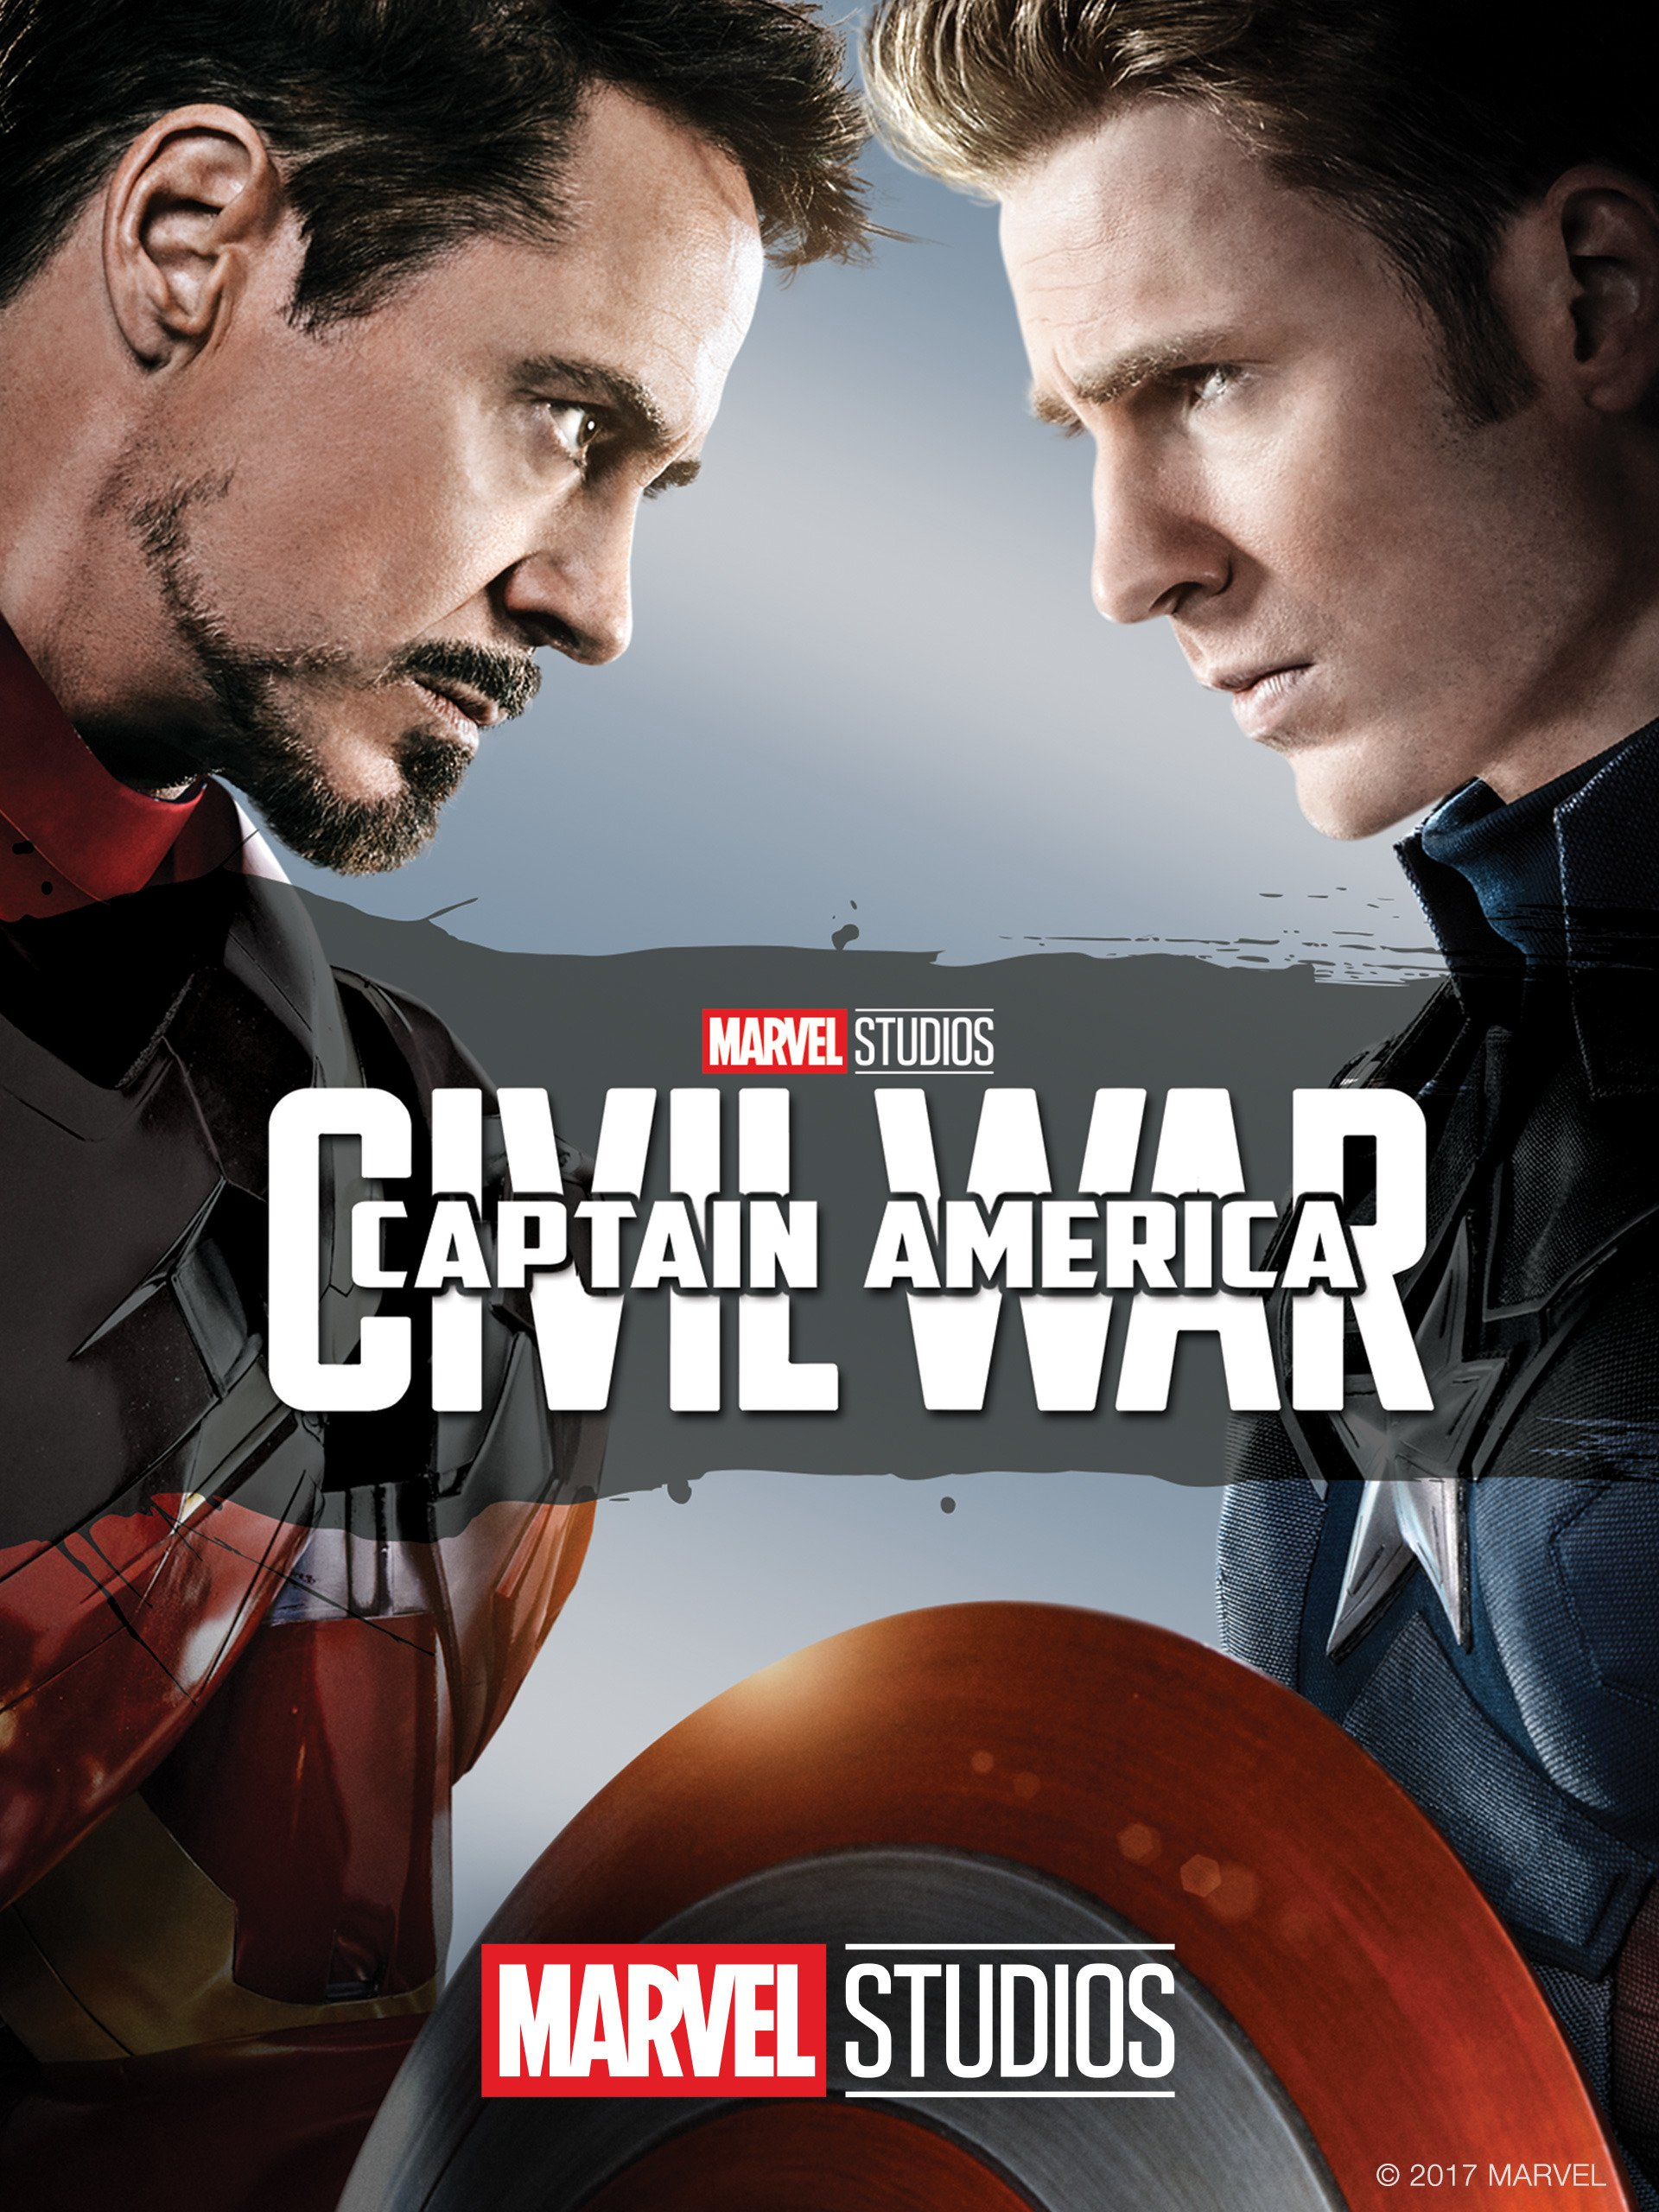 Watch Captain America: Civil War (Theatrical) | Prime Video